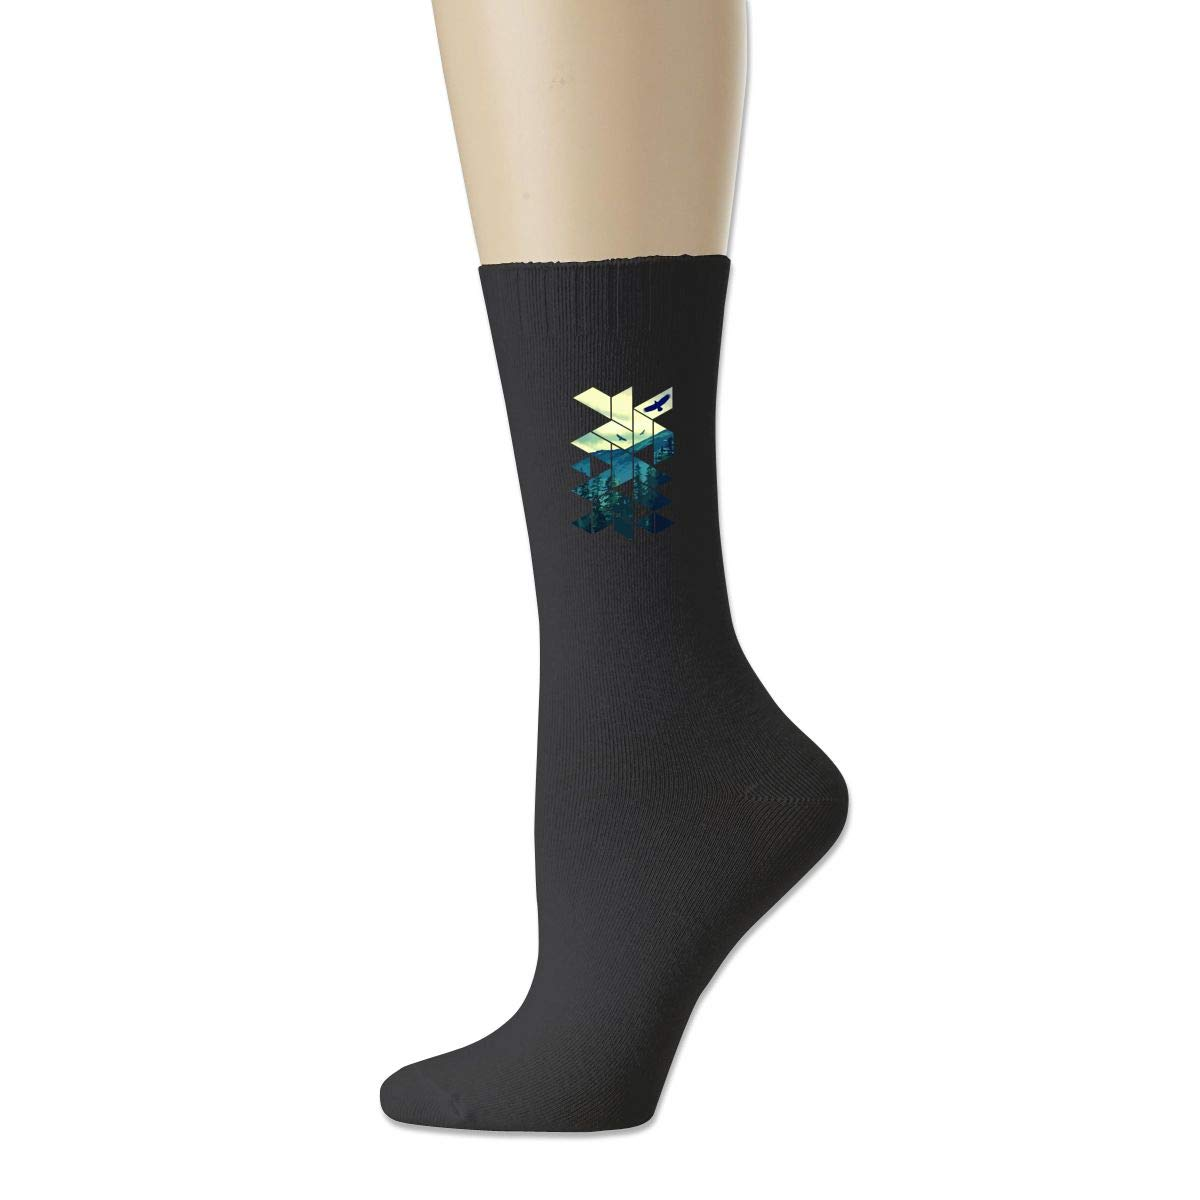 Rigg-socks Vintage Pines Eagles Mountain In Geometric Shape Mens Comfortable Sport Socks Black